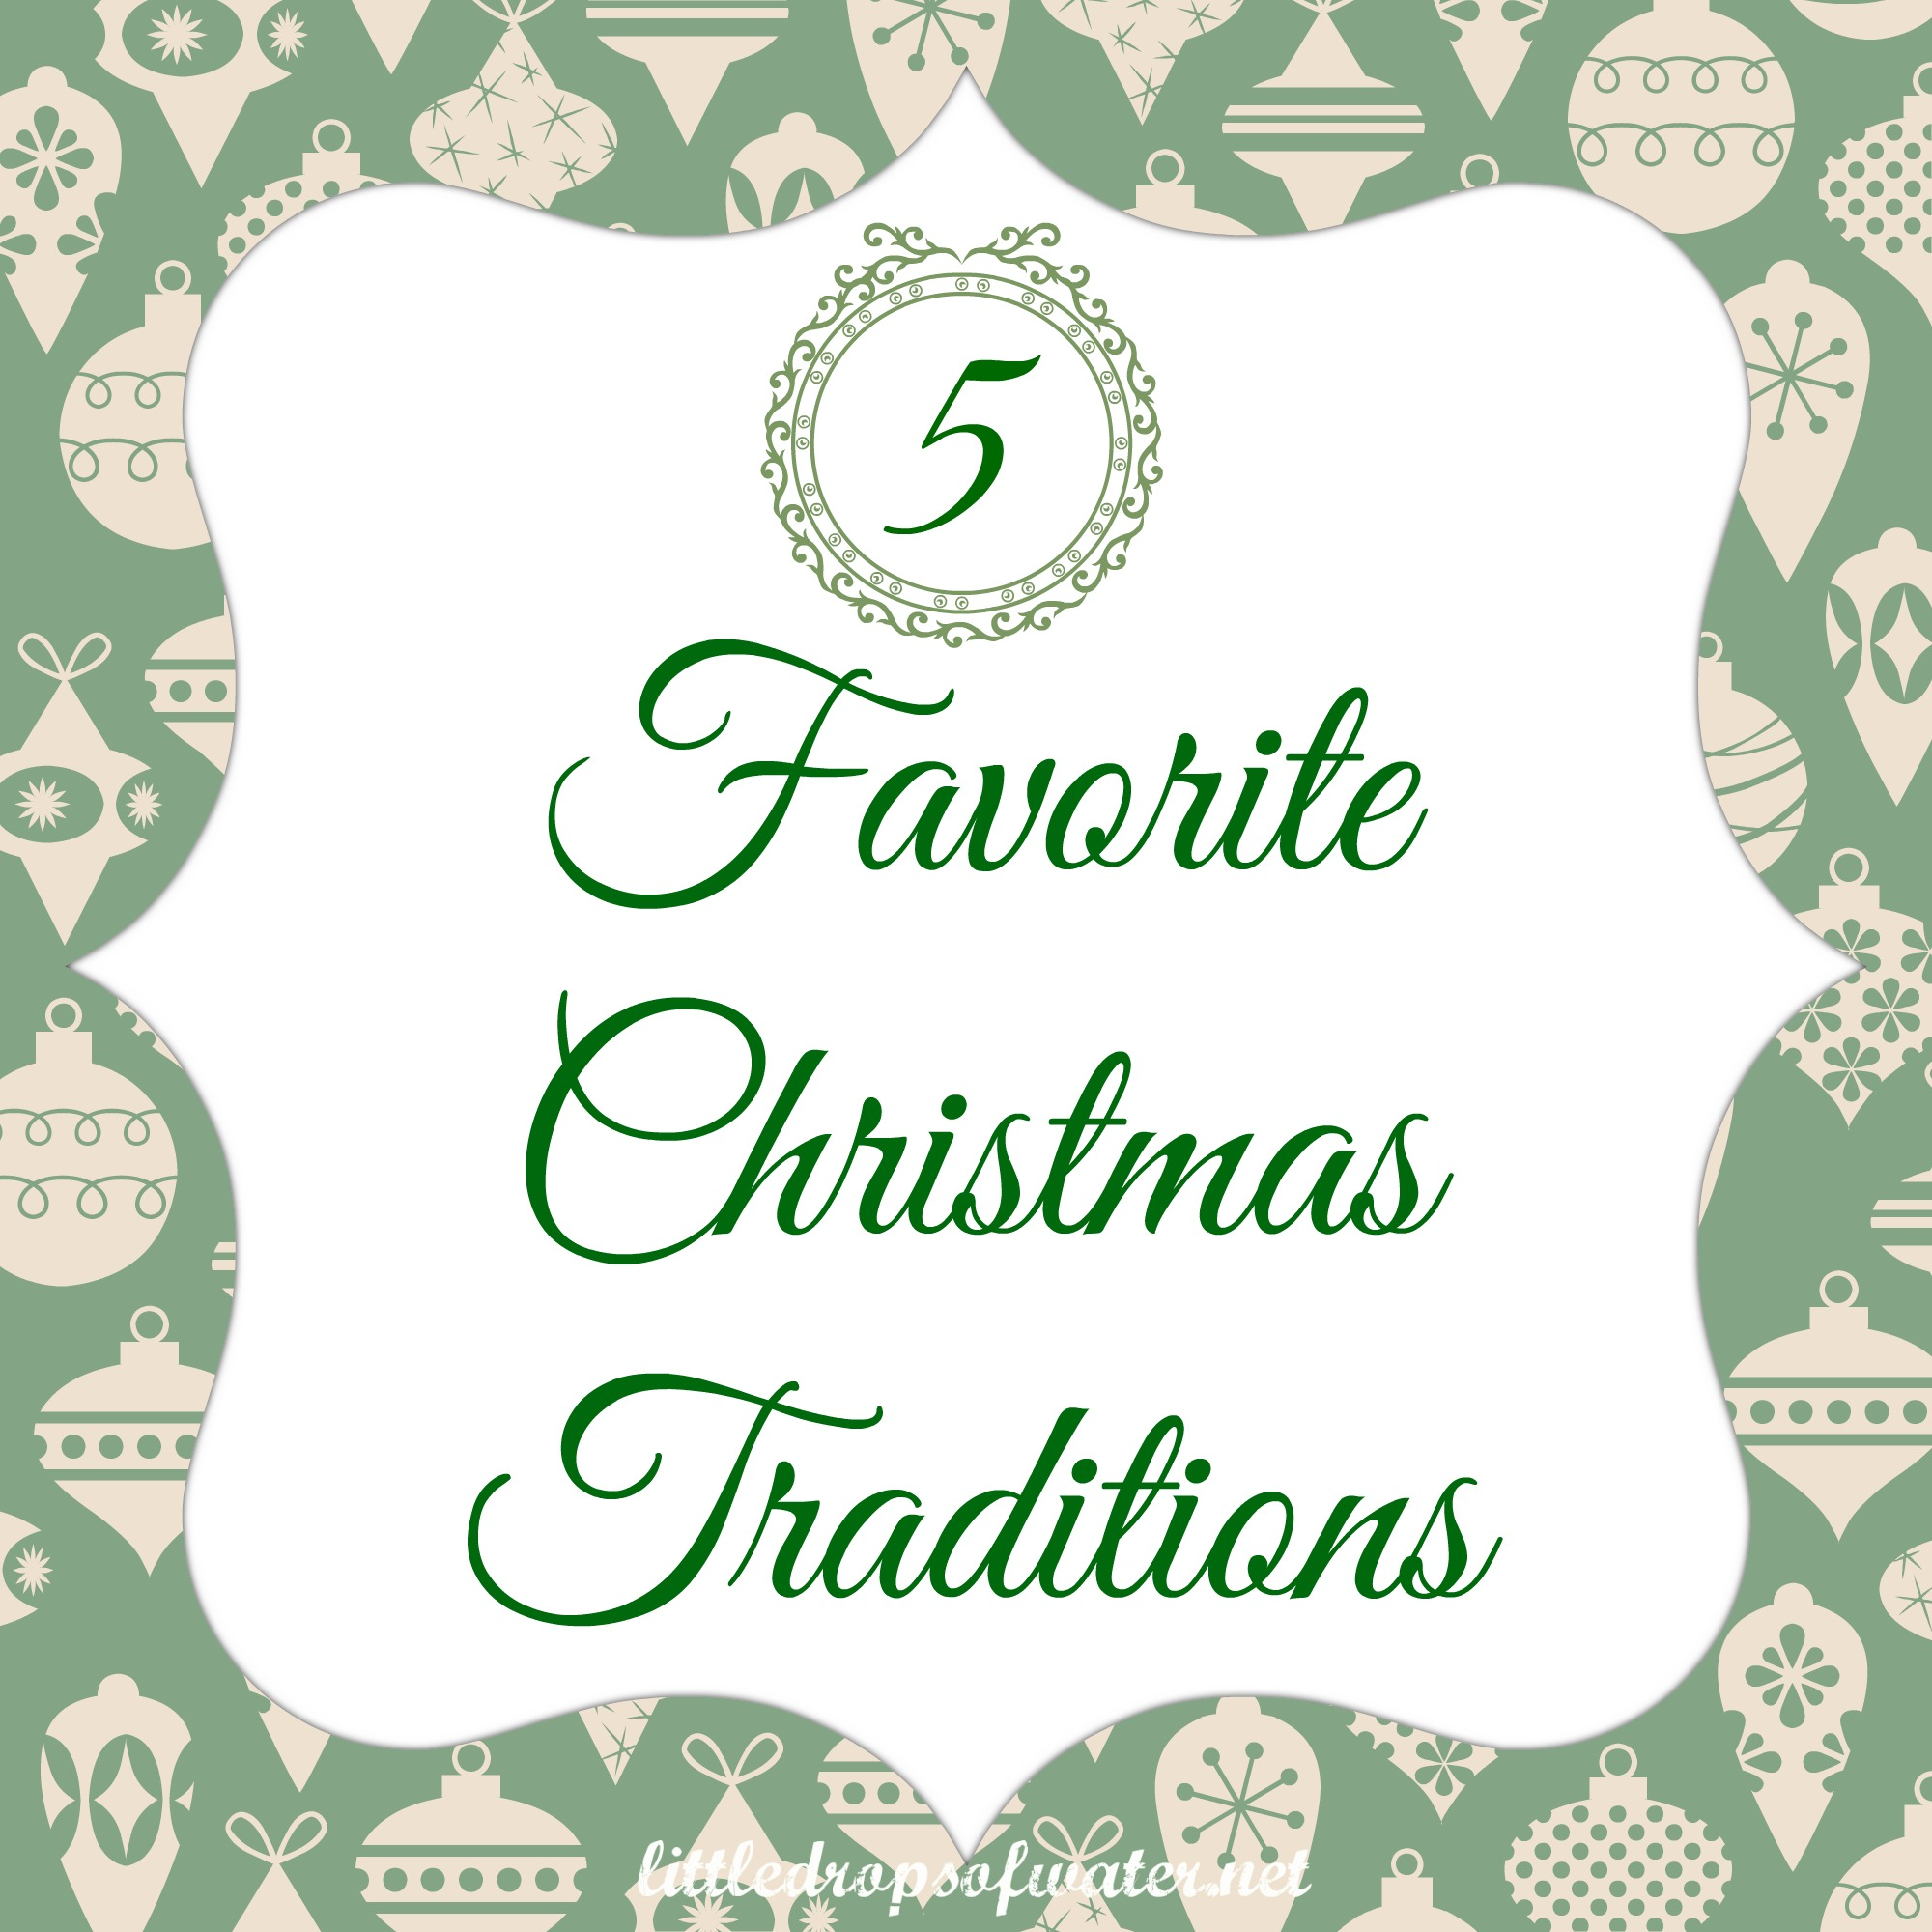 5 Favorite Christmas Traditions